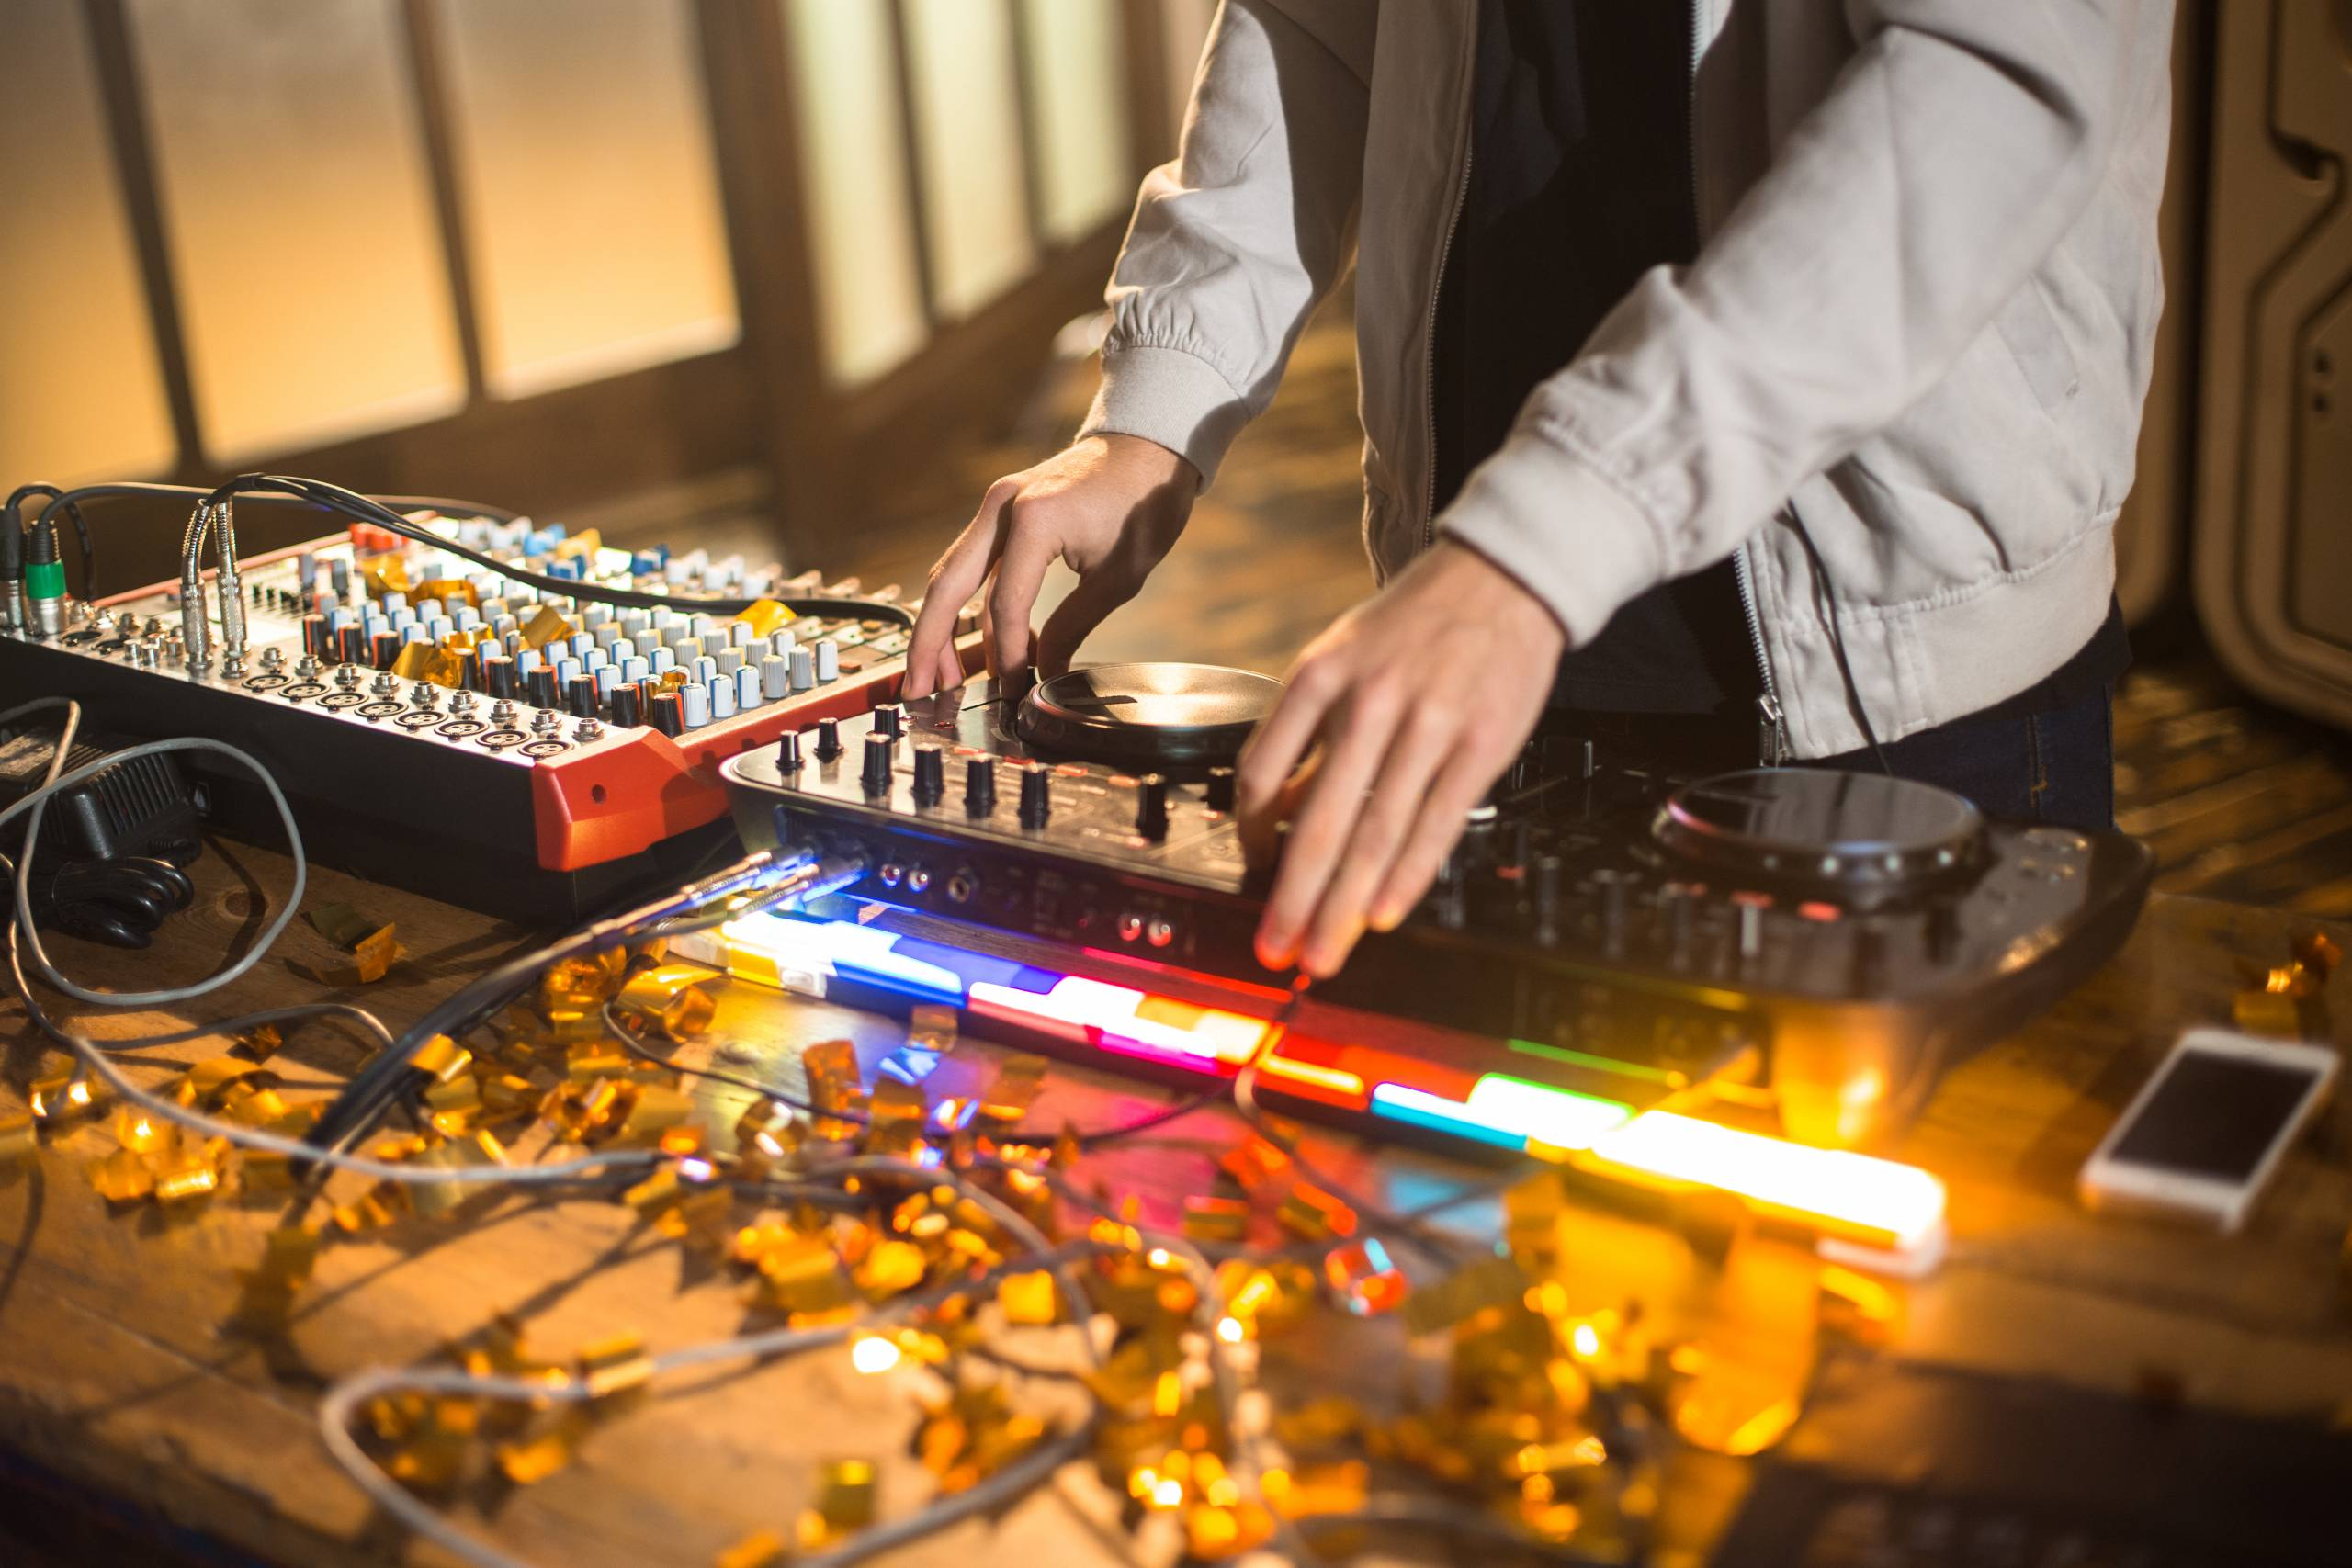 House Music and Brunch with Portland Based DJ Pirate Rabbits